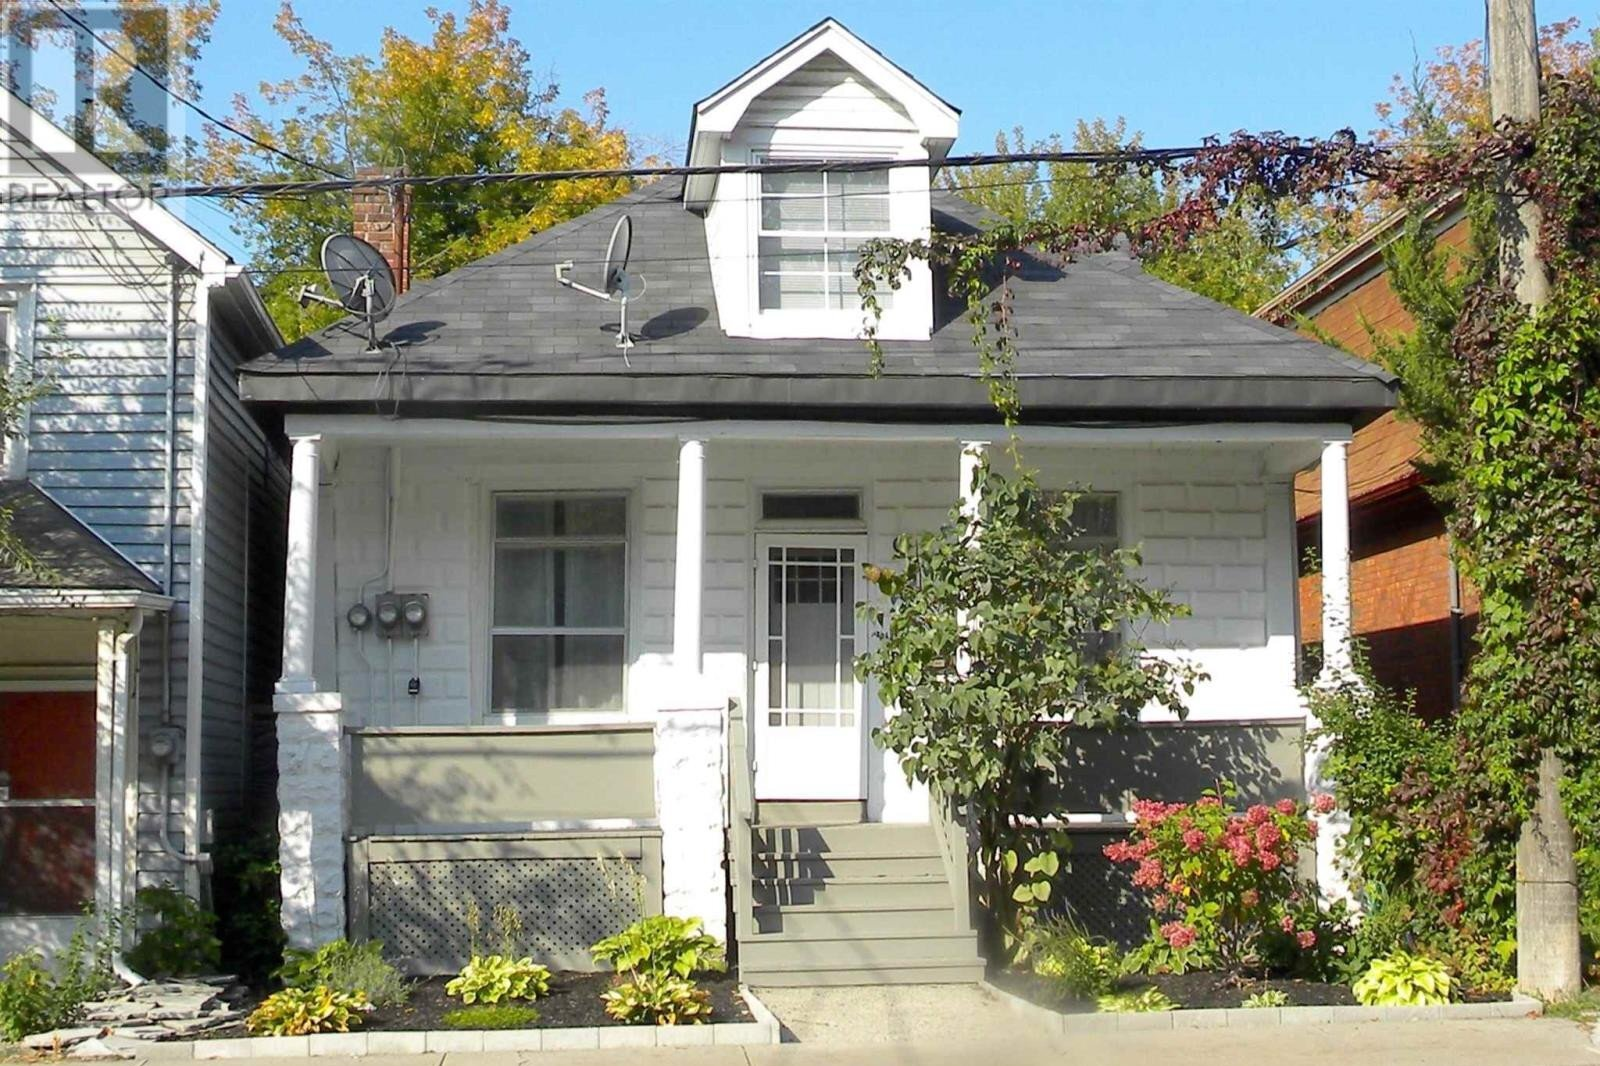 Townhouse for sale at 178 Montreal St Kingston Ontario - MLS: K20005847